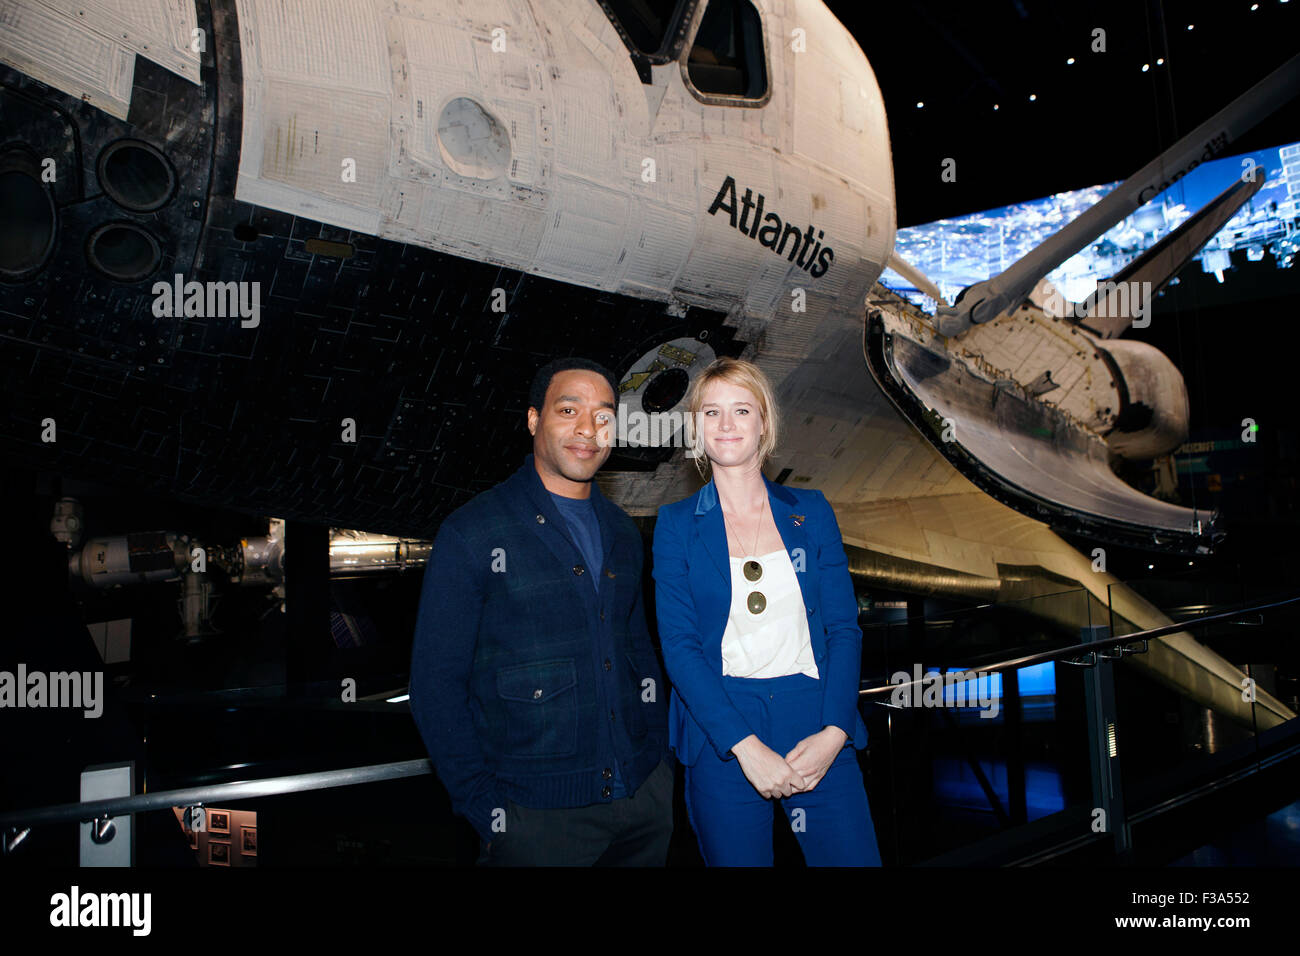 Actors Chiwetel Ejiofor and Mackenzie Davis pose for a photograph in front of Atlantis during a tour of Space Shuttle - Stock Image